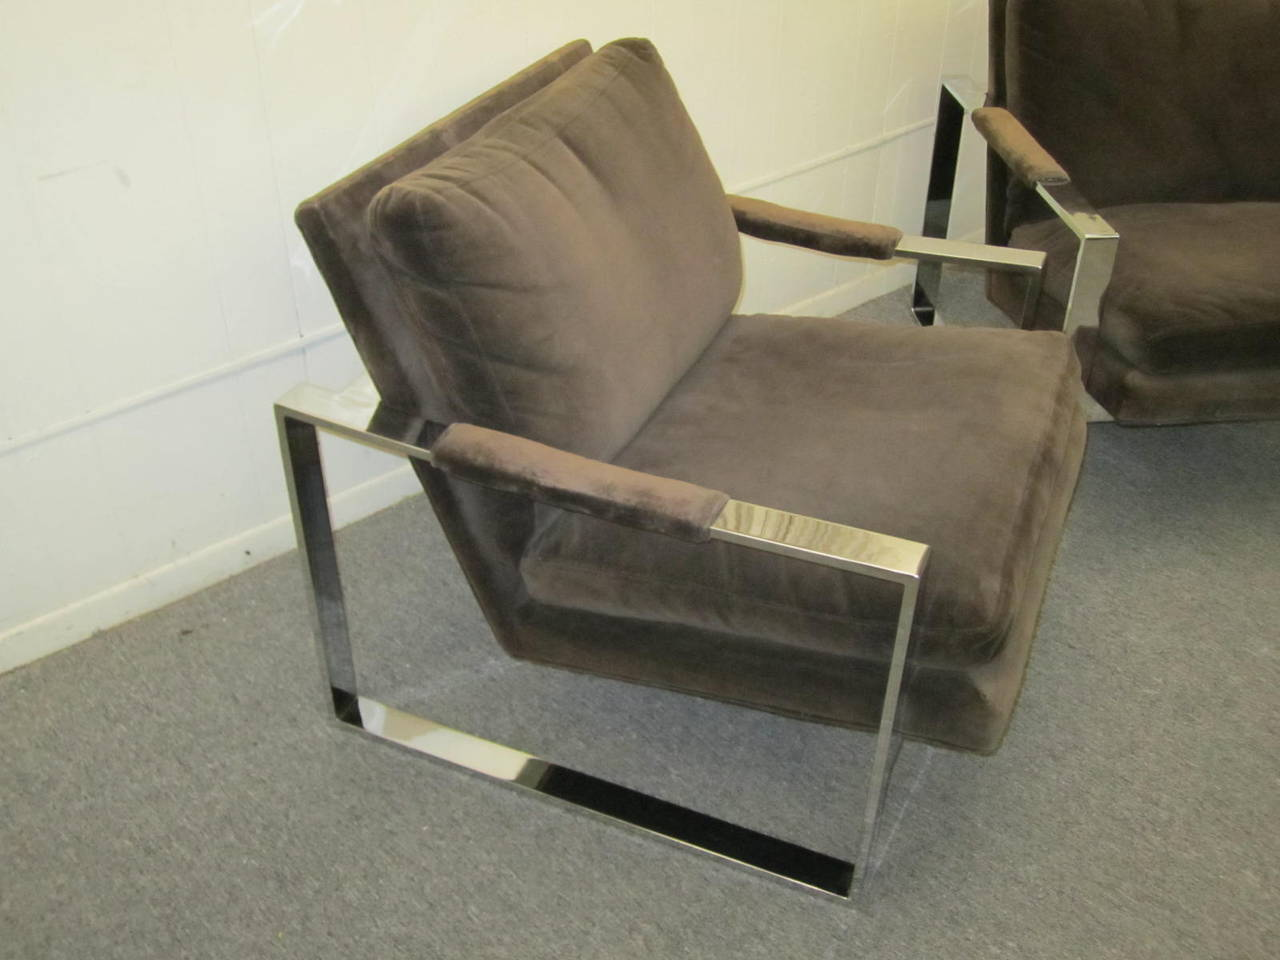 Fabulous Pair of Milo Baughman Chrome Cube Lounge Chairs, Mid-Century Modern For Sale 2